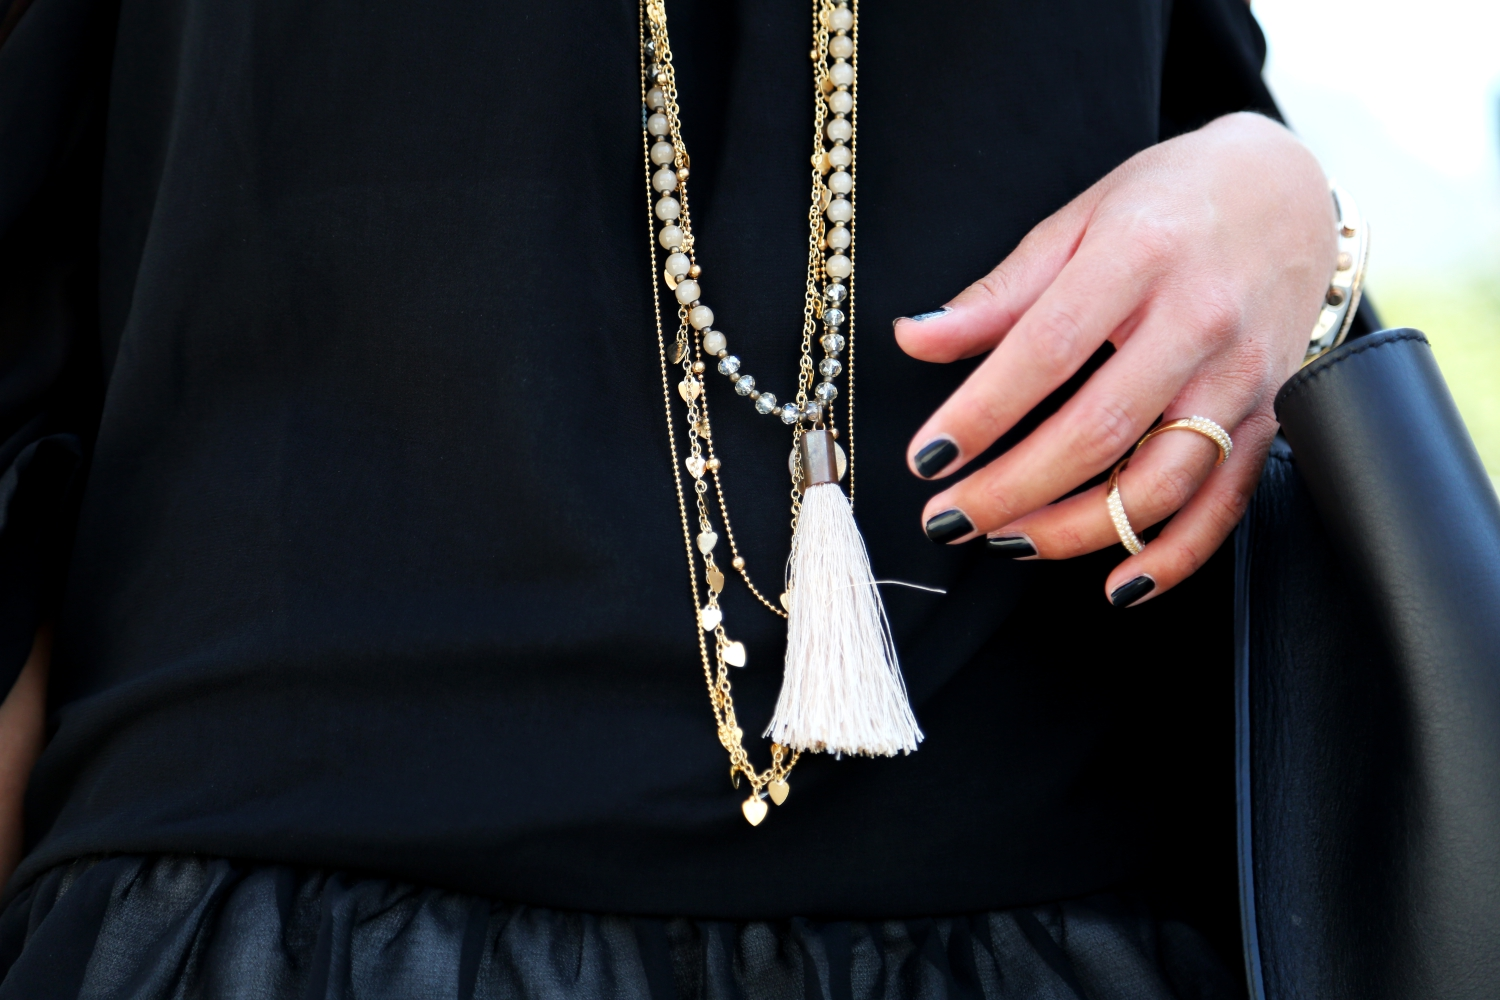 outfit-details-hallhuber-necklaces-fashionhippieloves